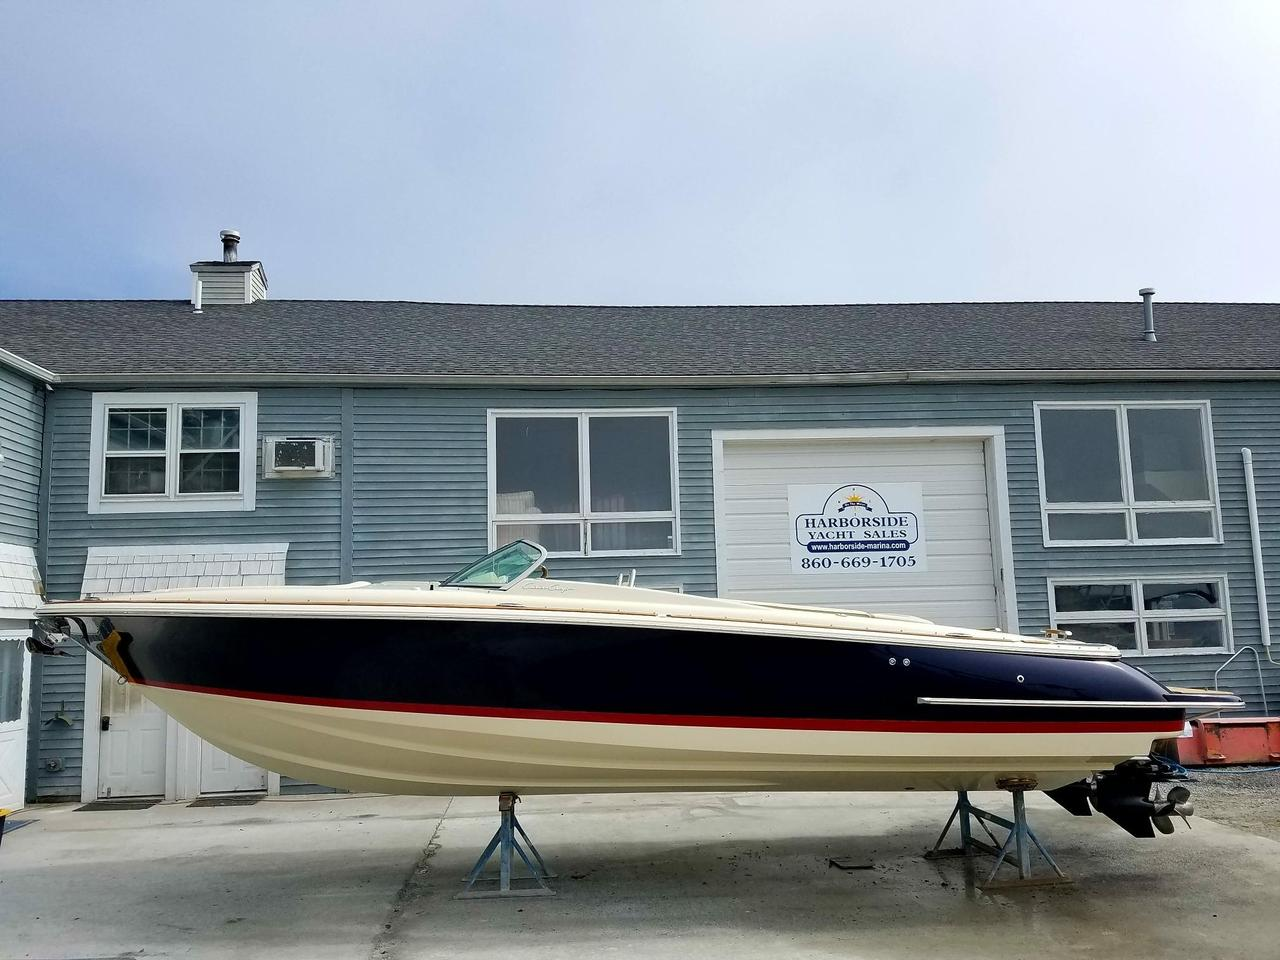 2019 New Chris-Craft Launch 30 Bowrider Boat For Sale